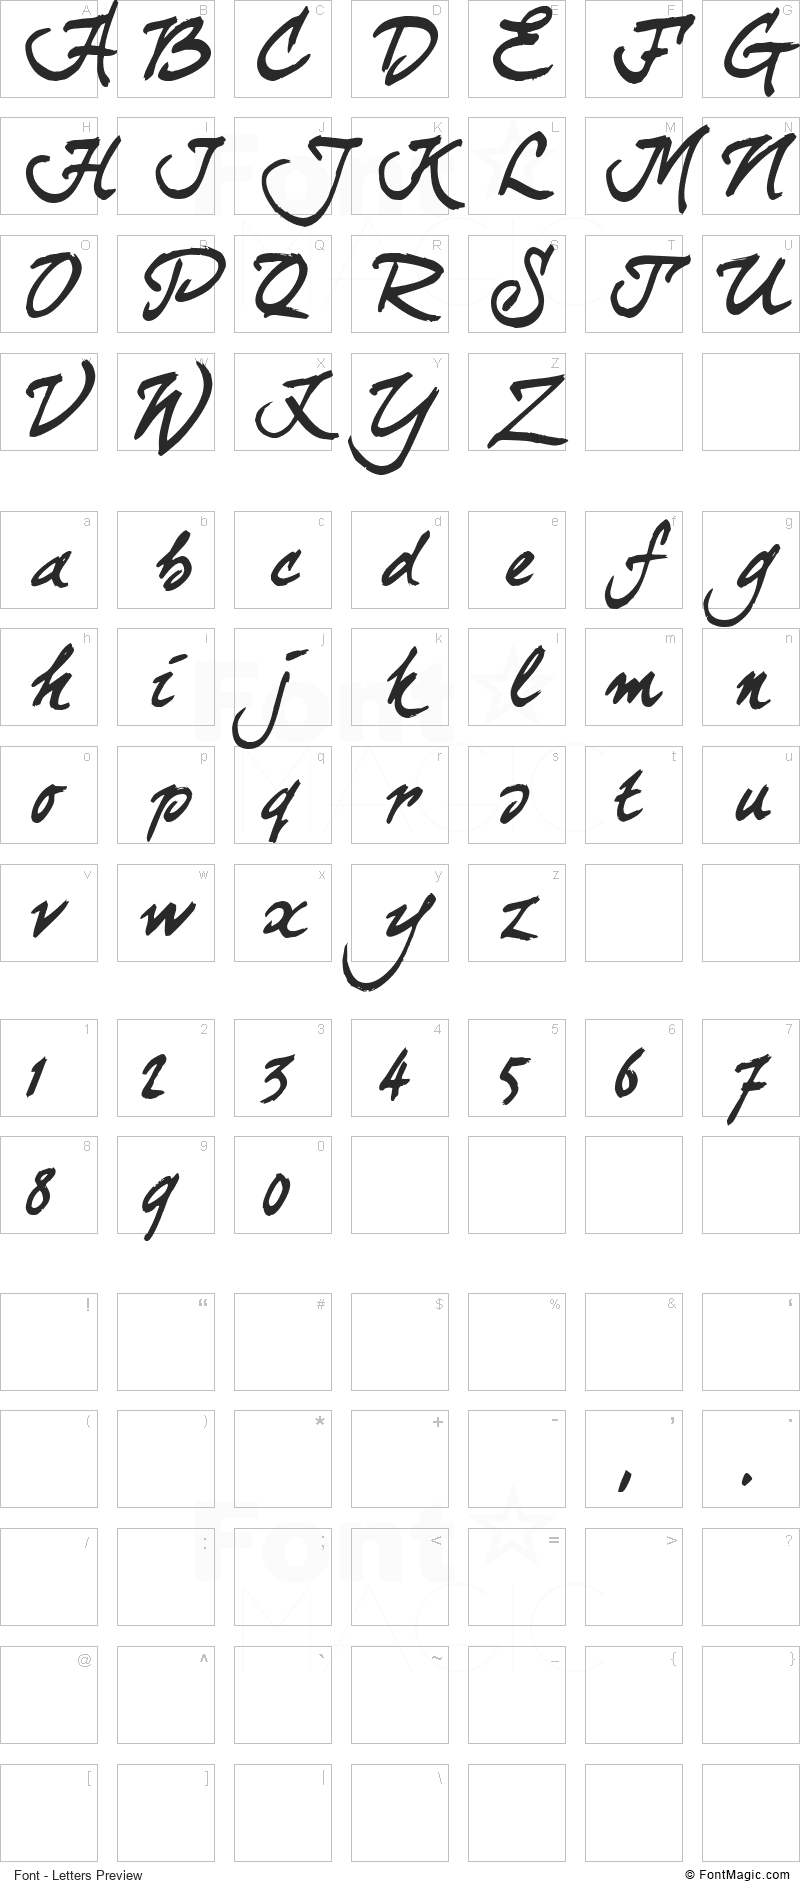 Curly Joe Font - All Latters Preview Chart